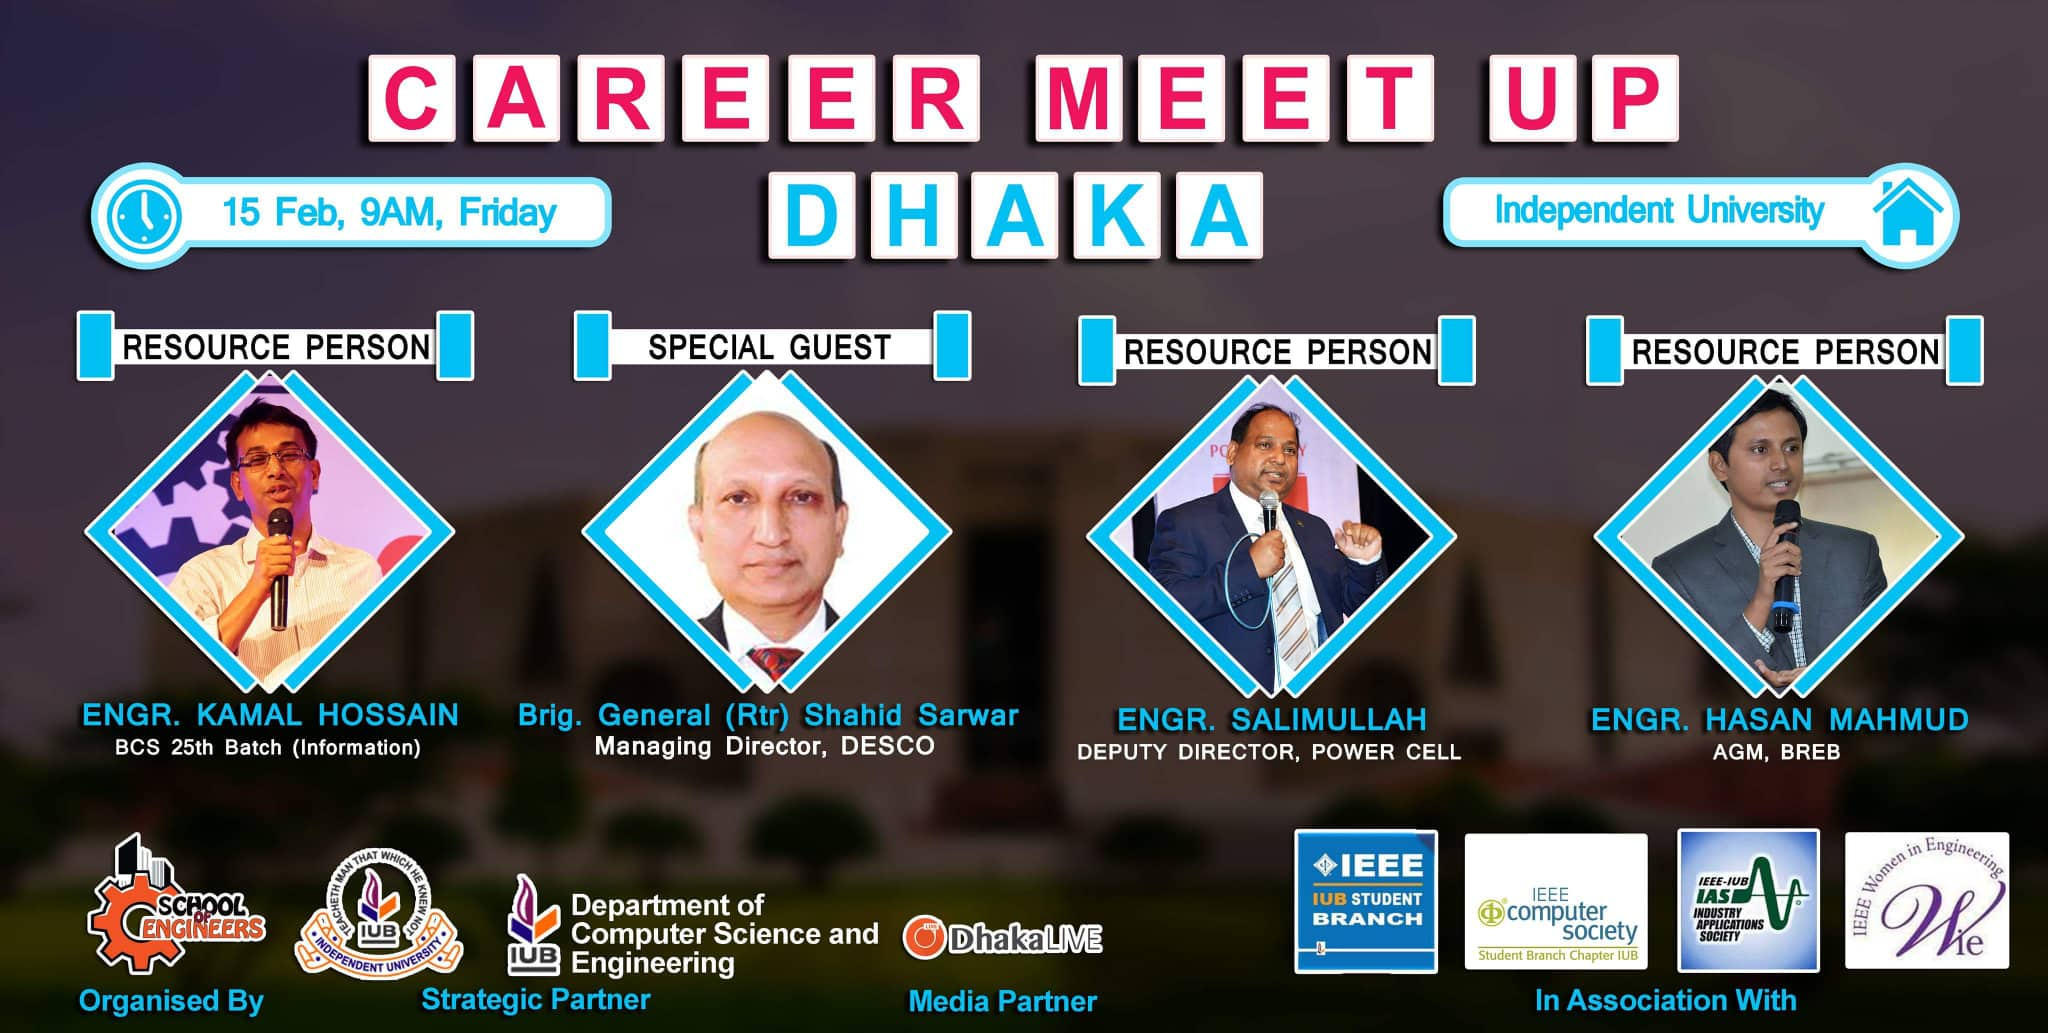 Career Met Up Dhaka